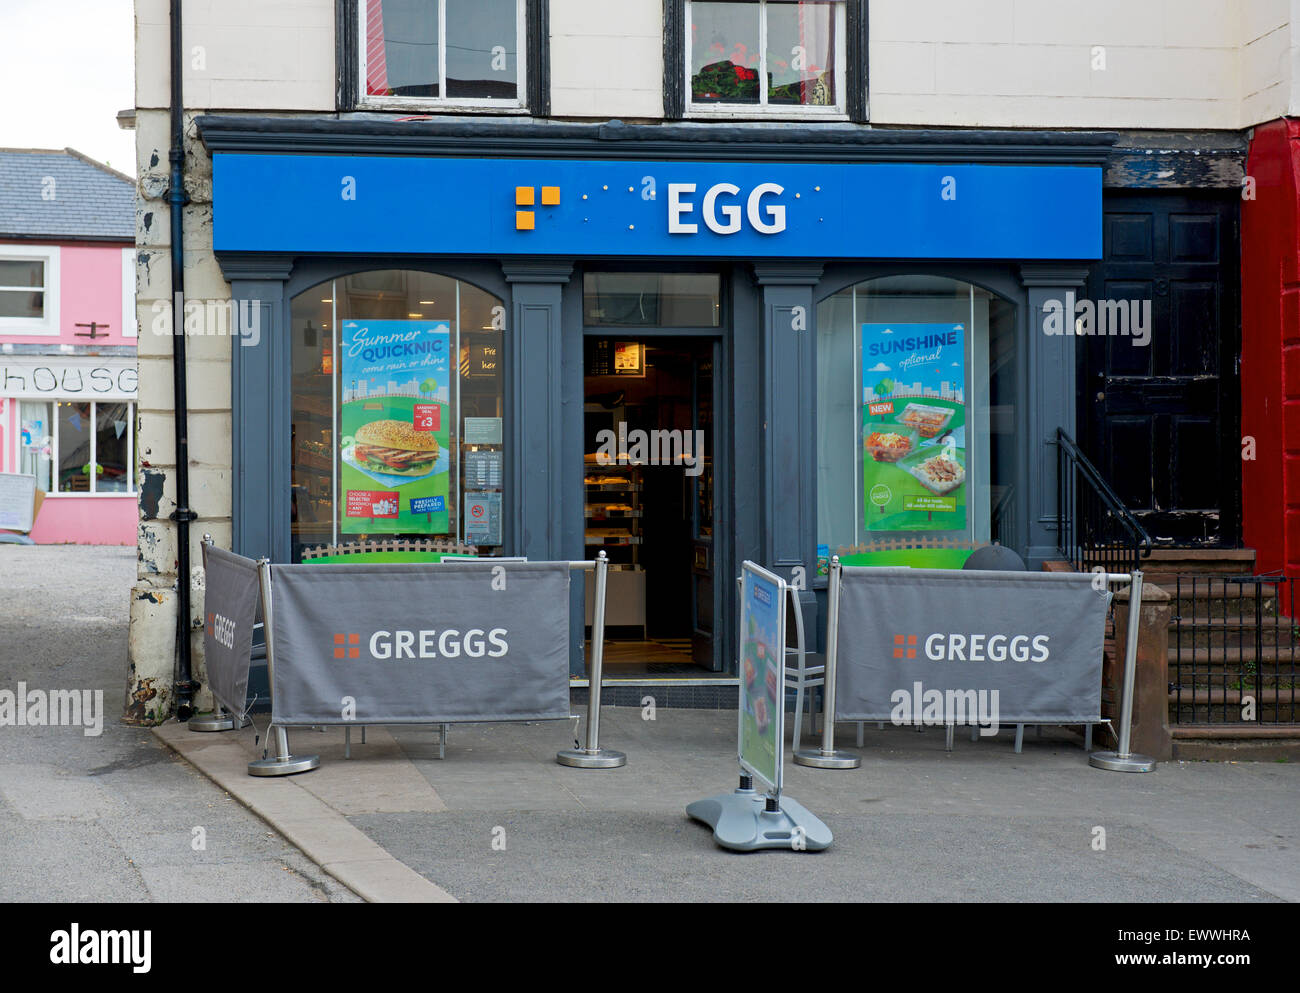 imaginative-vandalism-of-branch-of-greggs-the-bakers-england-uk-EWWHRA.jpg